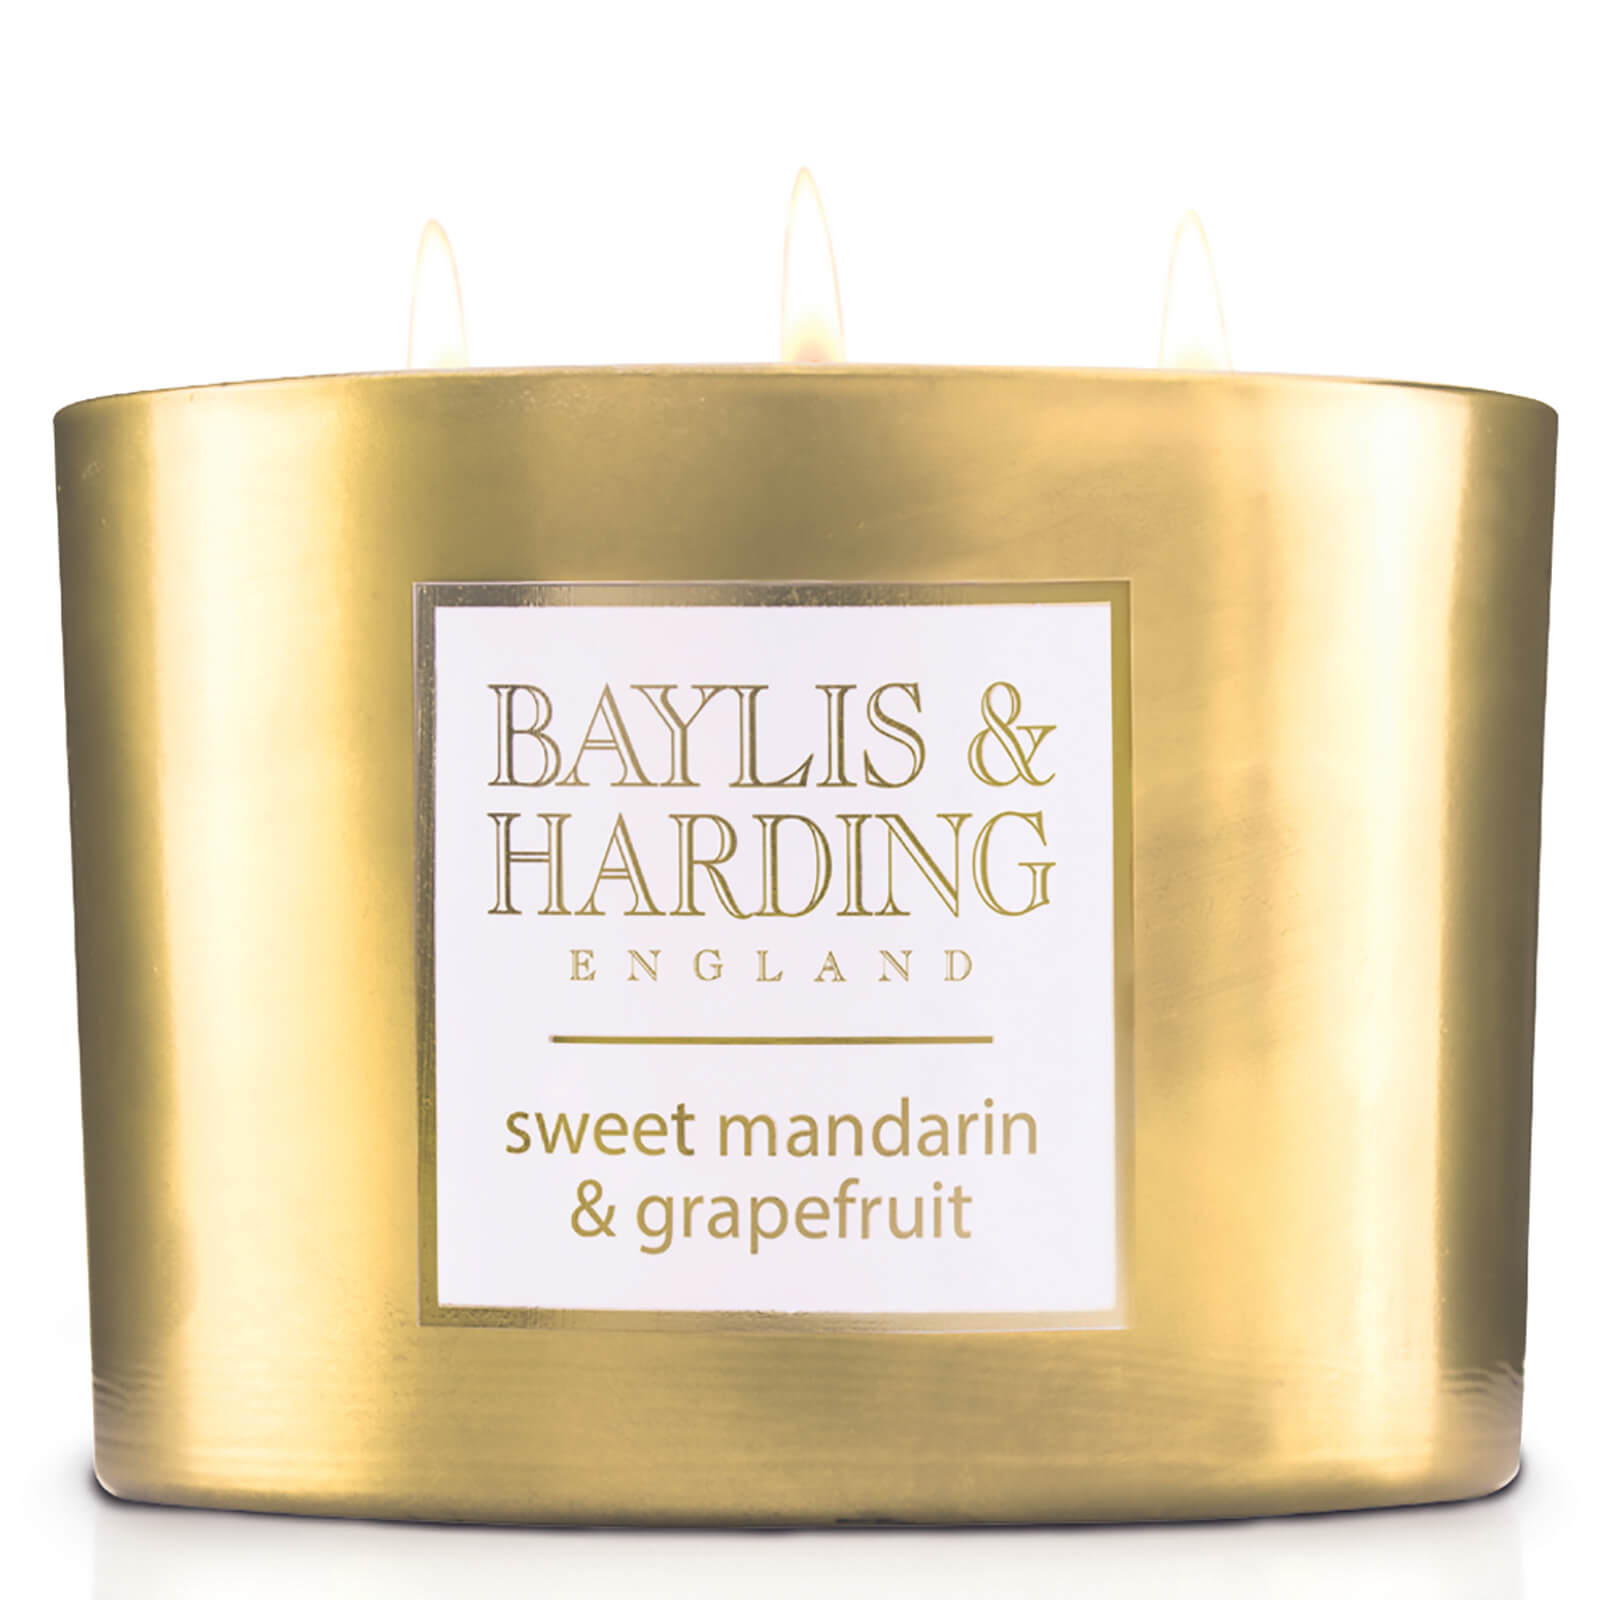 Baylis & Harding Sweet Mandarin and Grapefruit 3 Wick Candle with Metallic Holder